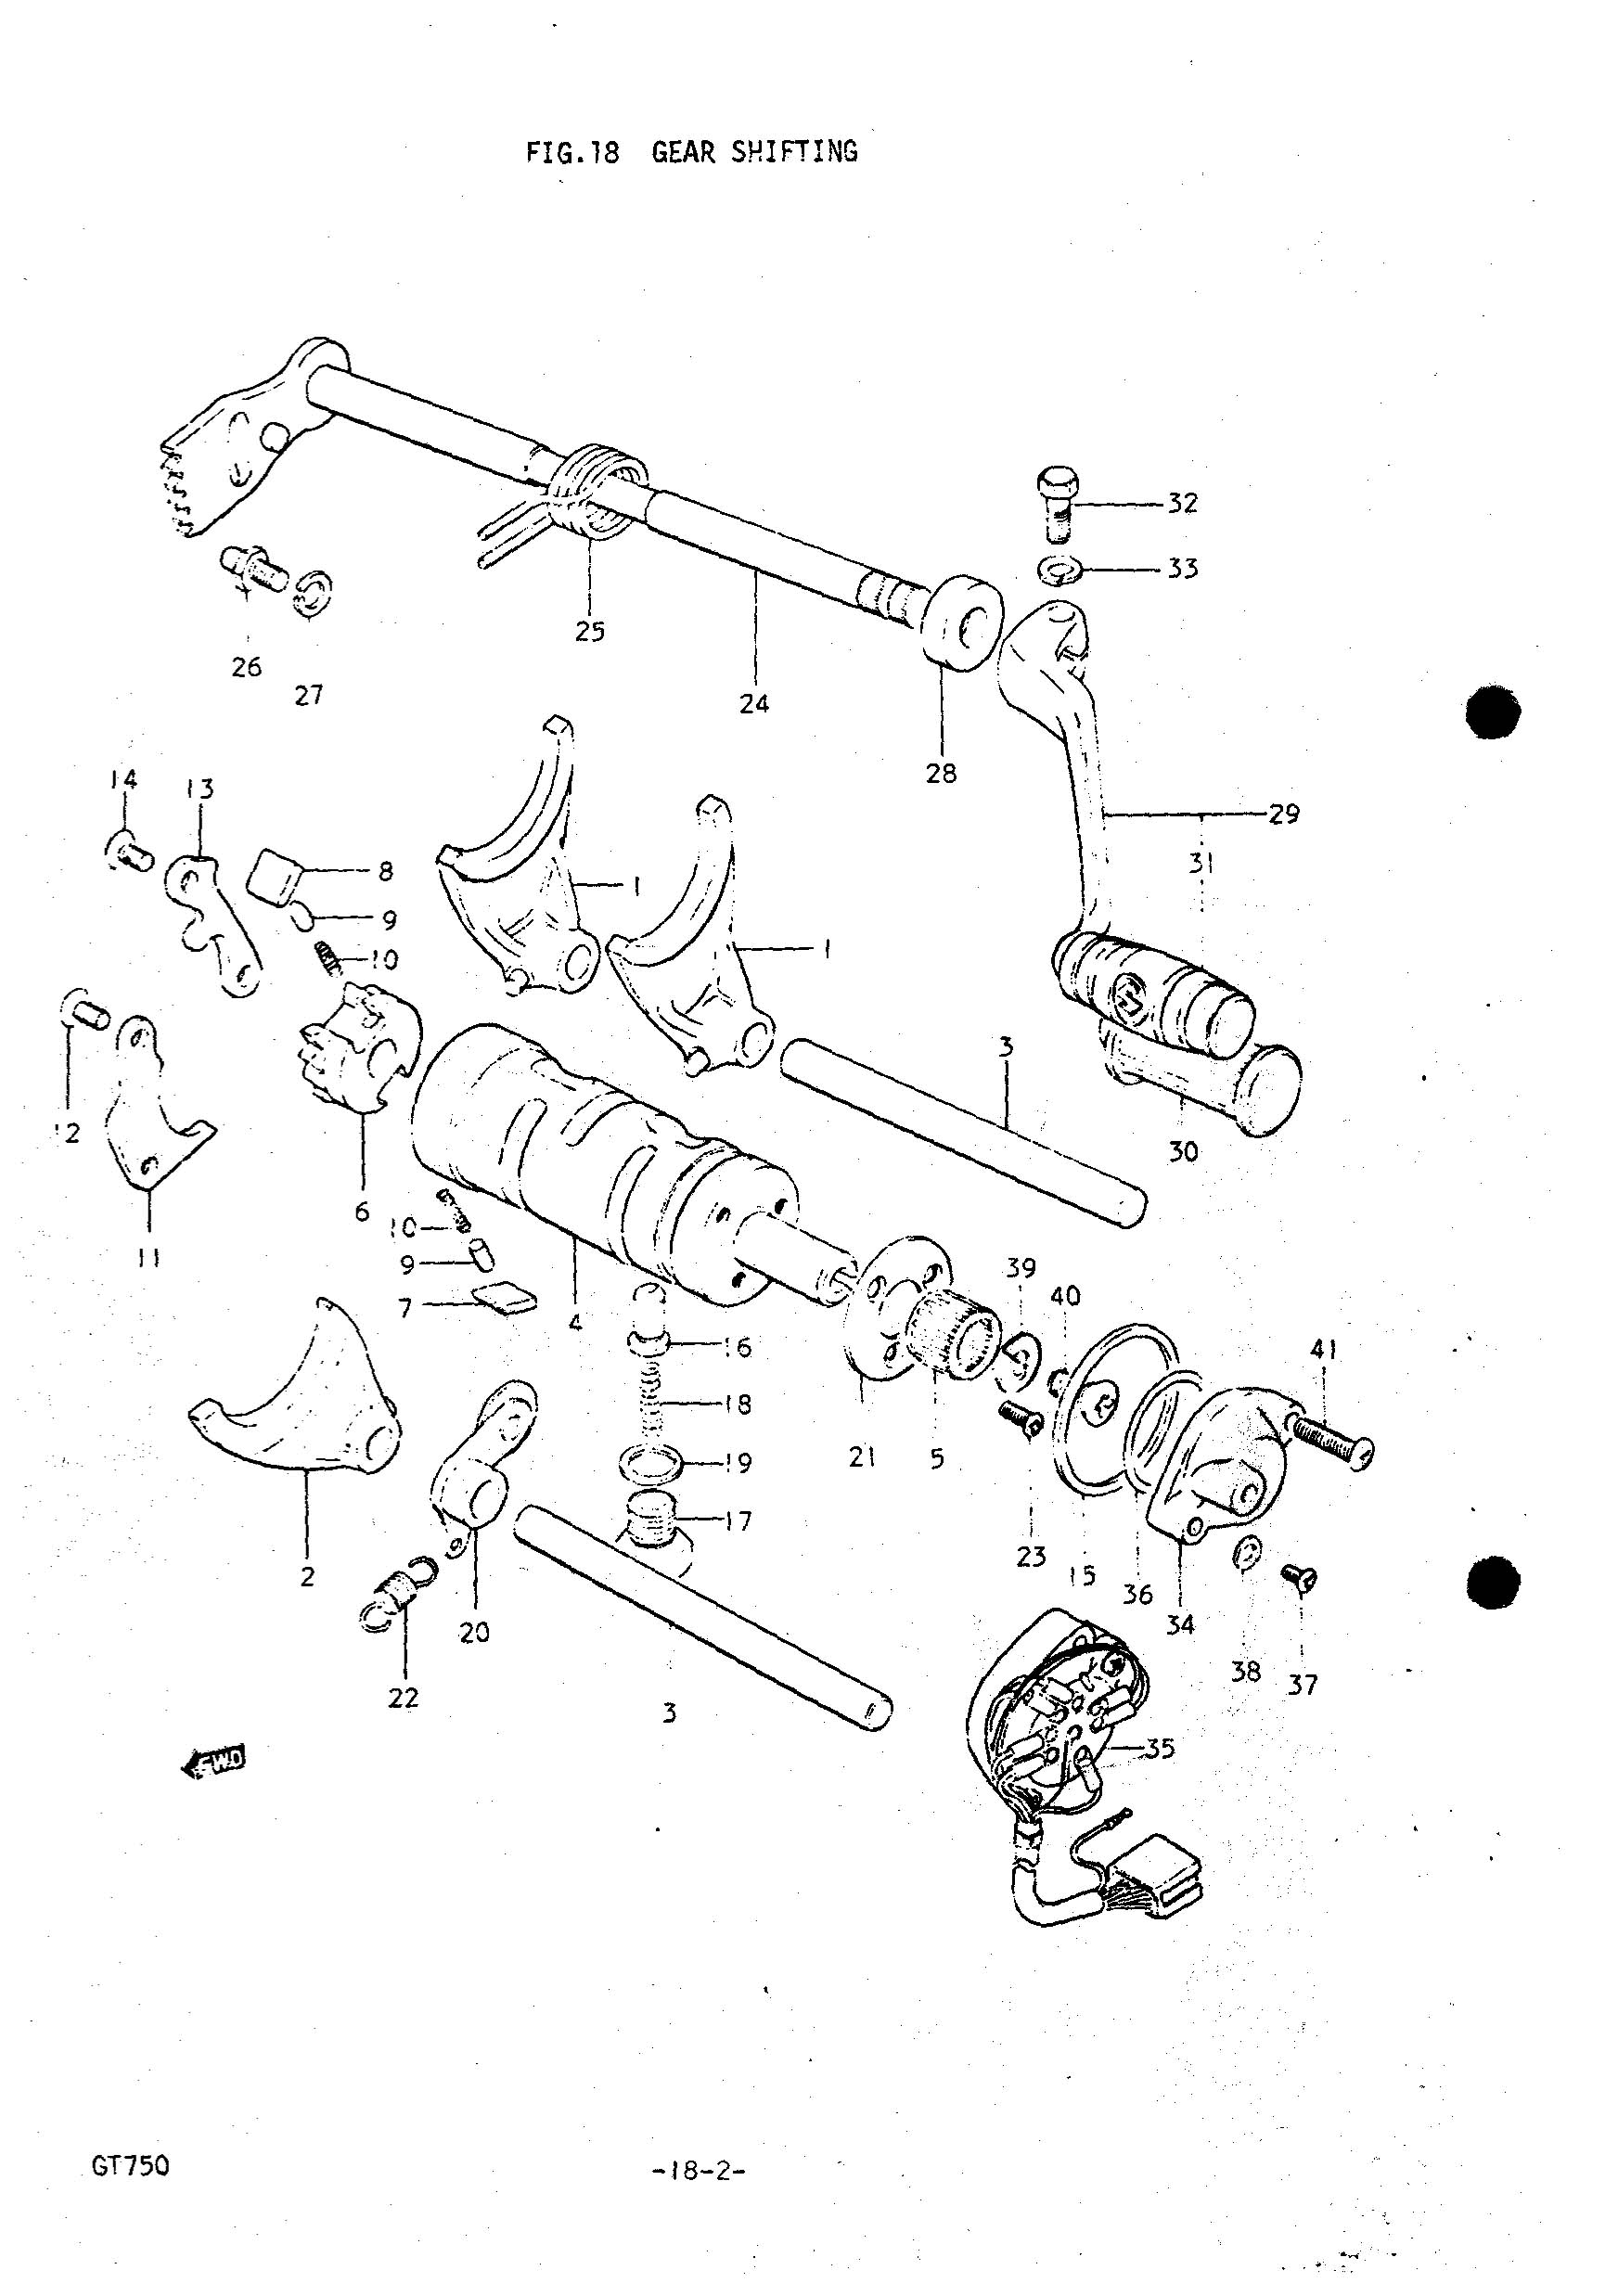 Suzuki Ozark Shifter Diagram